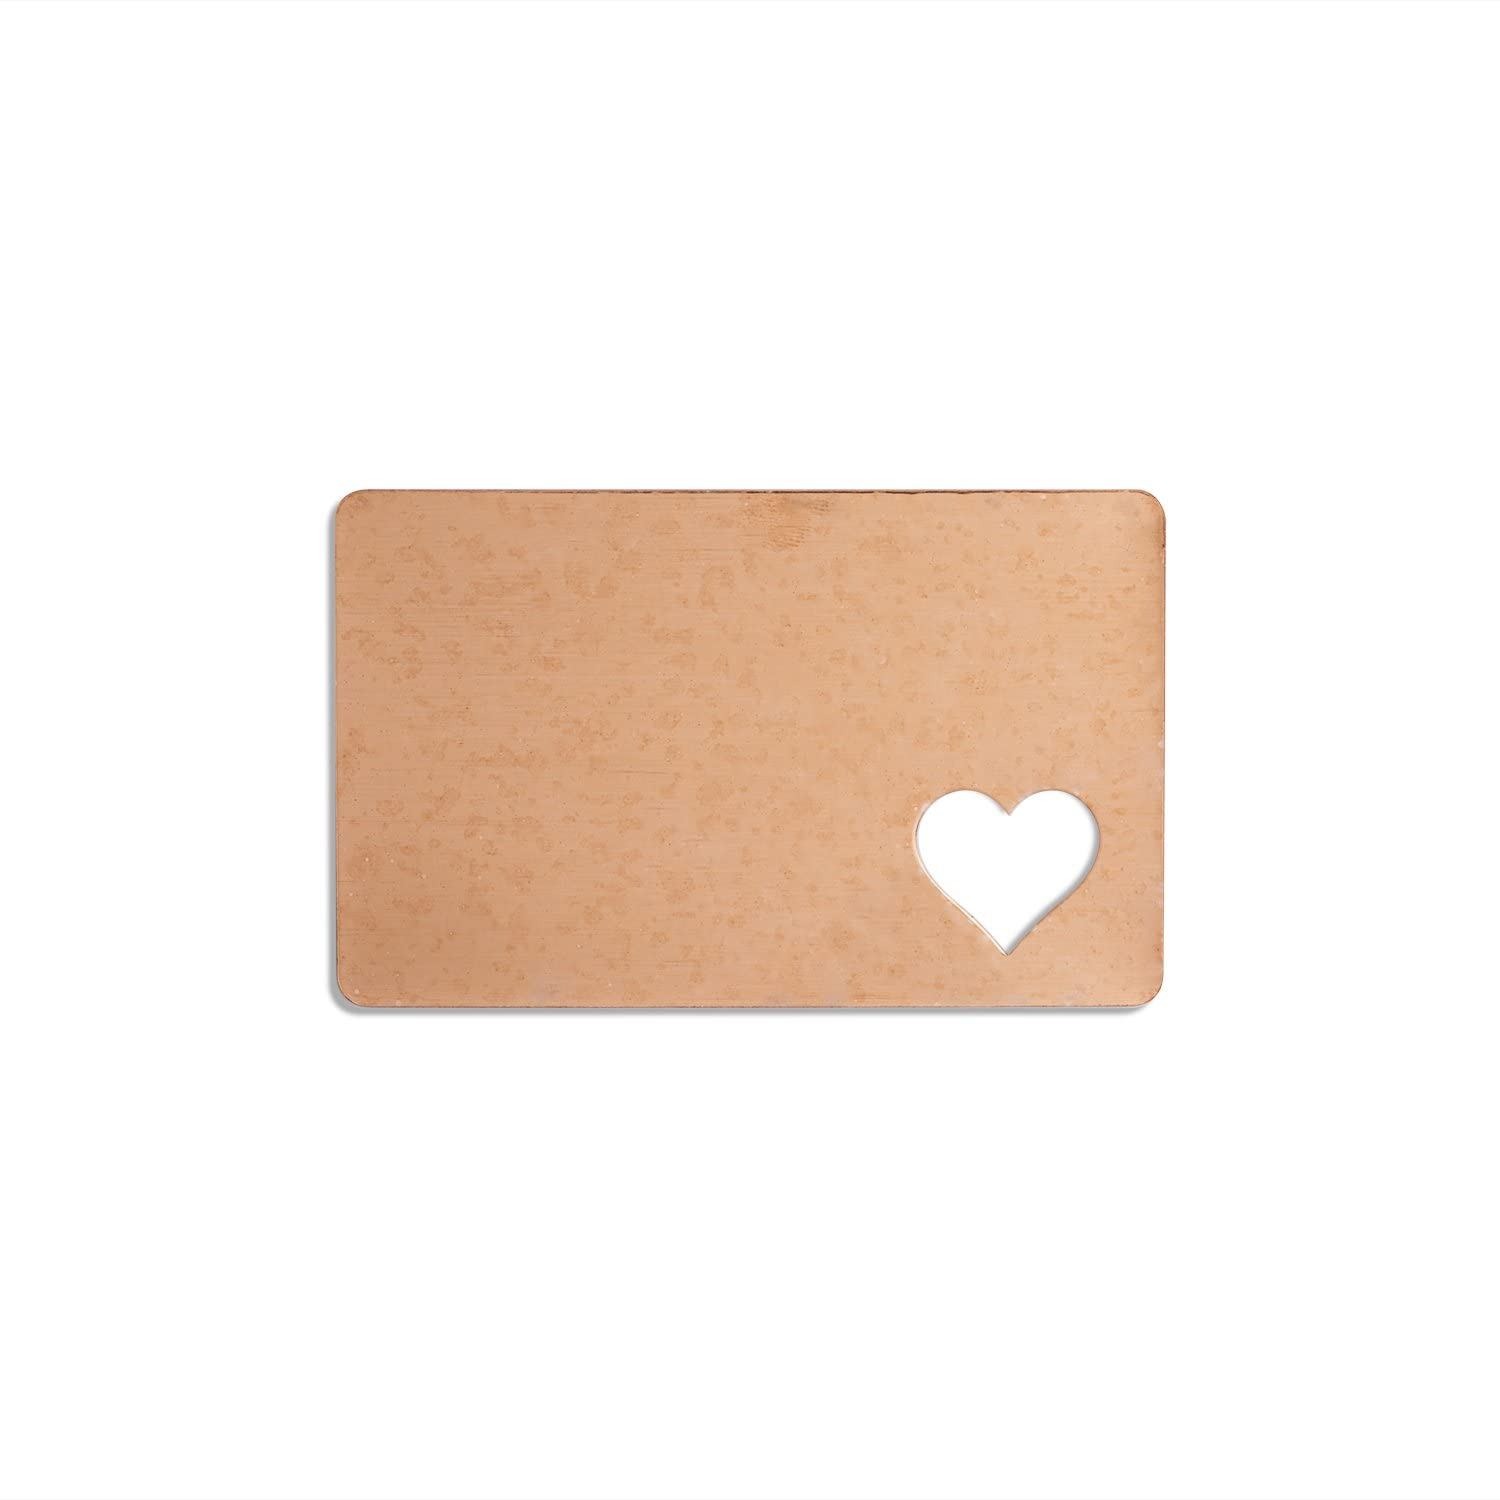 RMP Stamping Blanks, 2-1/8 Inch x 3-3/8 Inch Rectangle Wallet Card with 0.691 Inch x 3/4 Inch Heart, 16 Oz. Copper 0.021 Inch (24 Ga.) - 3 Pack